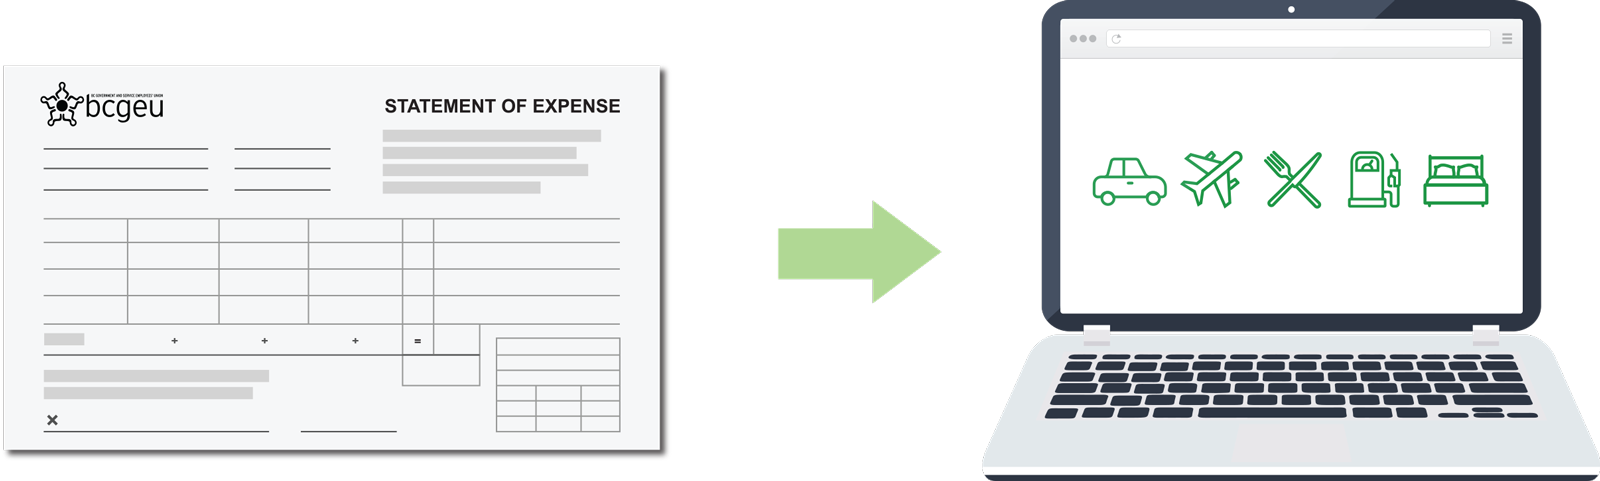 From BCGEU Expense Paper form to Online Expenses